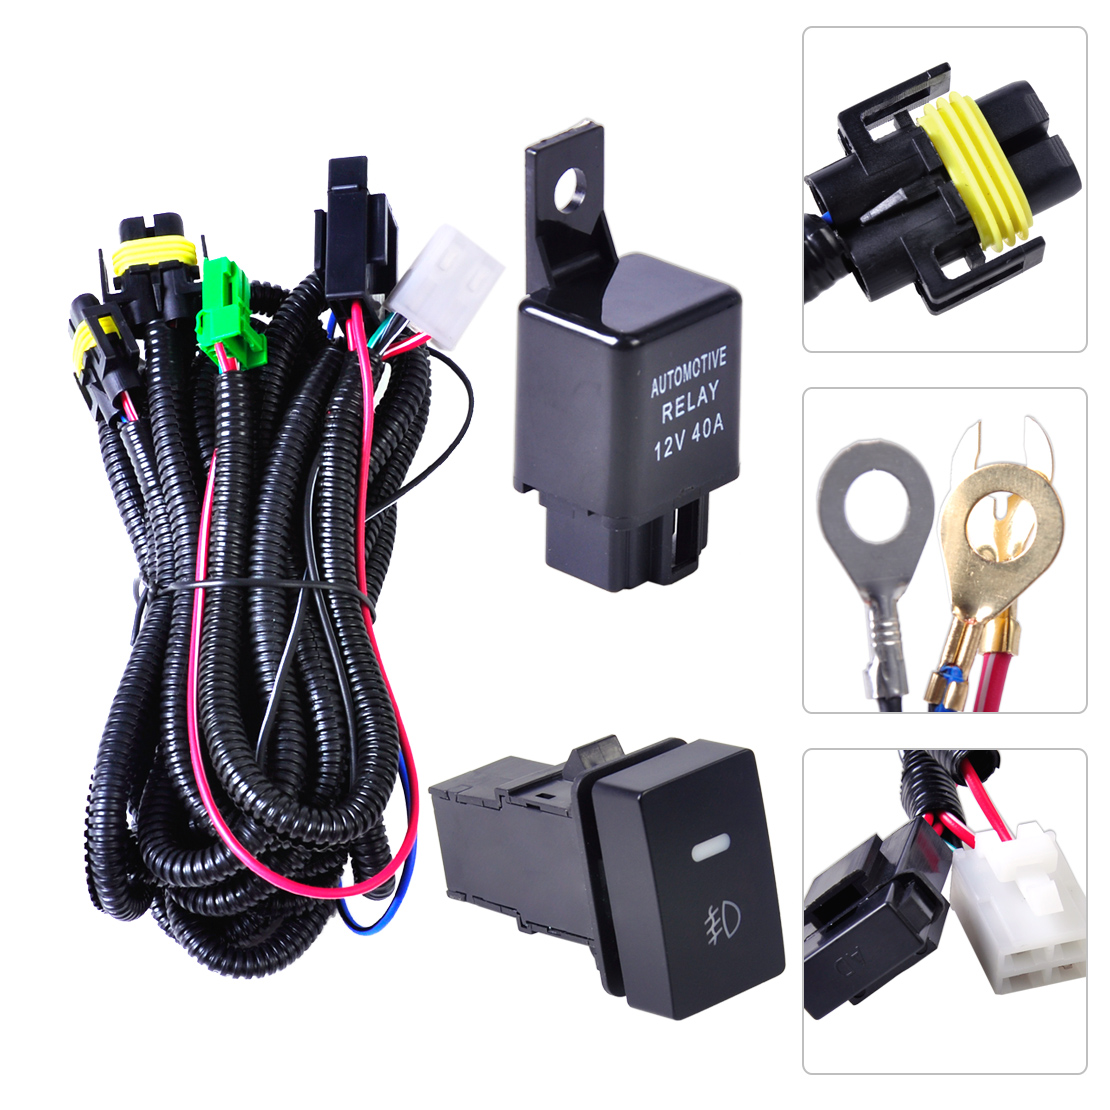 DWCX Wiring Harness Sockets Wire + Switch for H11 Fog Light Lamp for Ford Focus Acura Nissan Suzuki Subaru Lincoln Honda CR-V for opel astra h gtc 2005 15 h11 wiring harness sockets wire connector switch 2 fog lights drl front bumper 5d lens led lamp